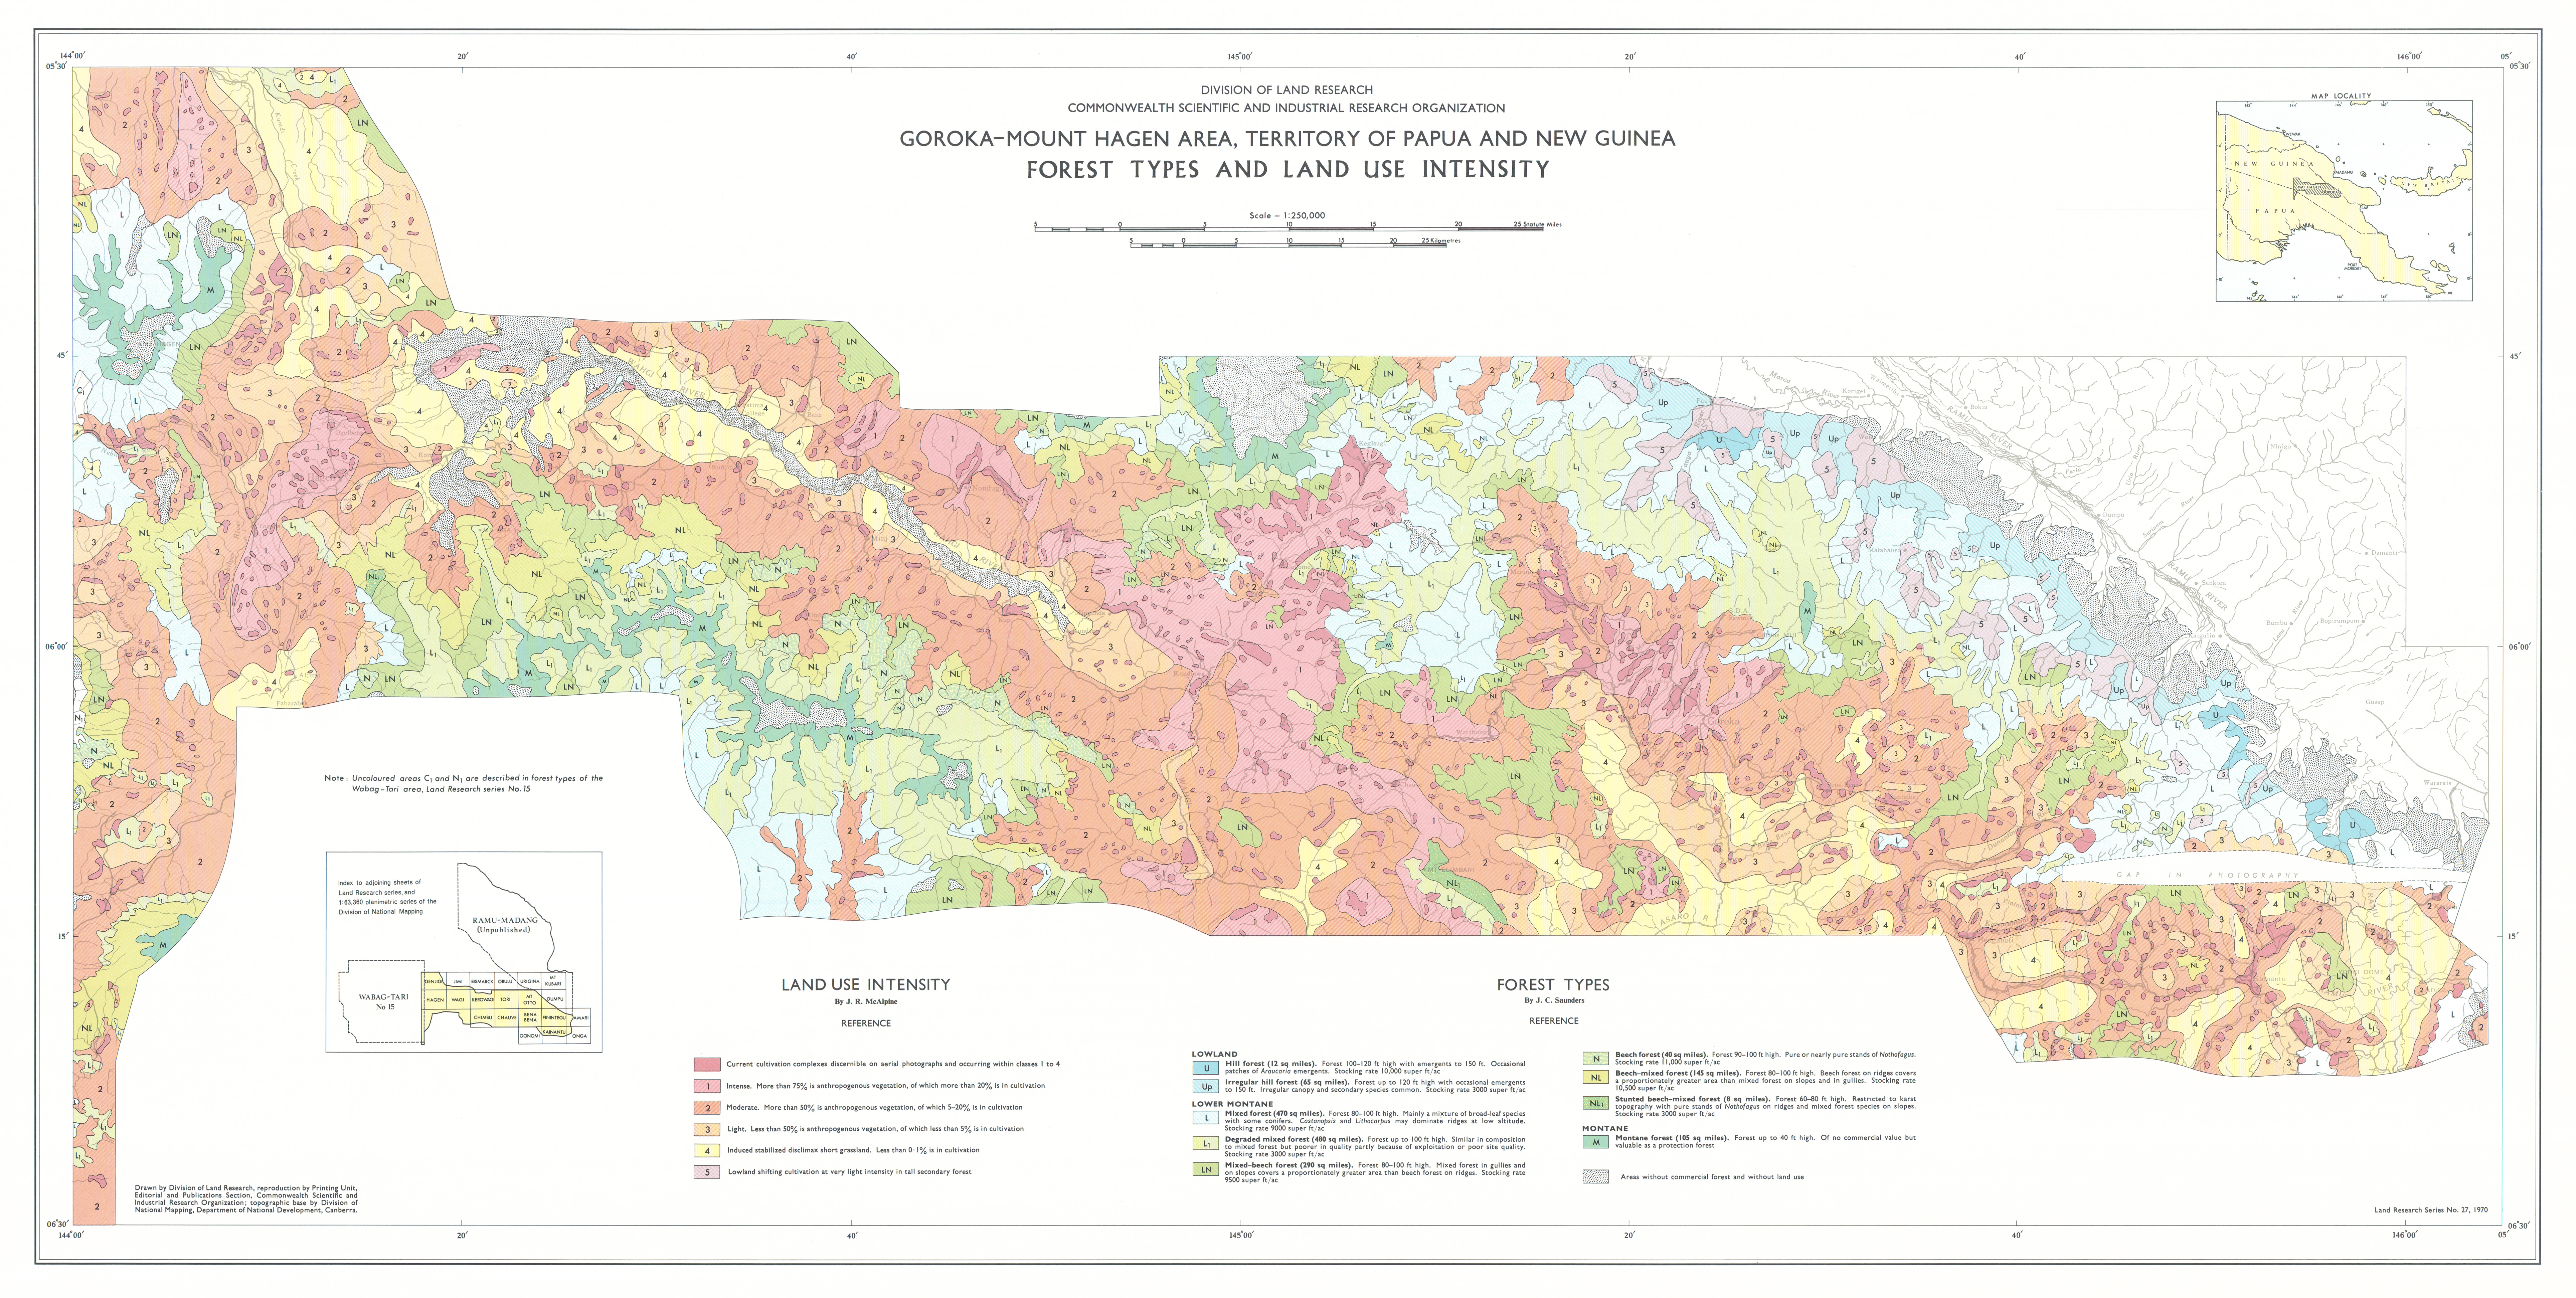 Csiro publishing csiro land research surveys map 2 forest types and land use intensity of the gorokamount hagen area territory of papua and new guinea by jc saunders and jr mcalpine sciox Image collections